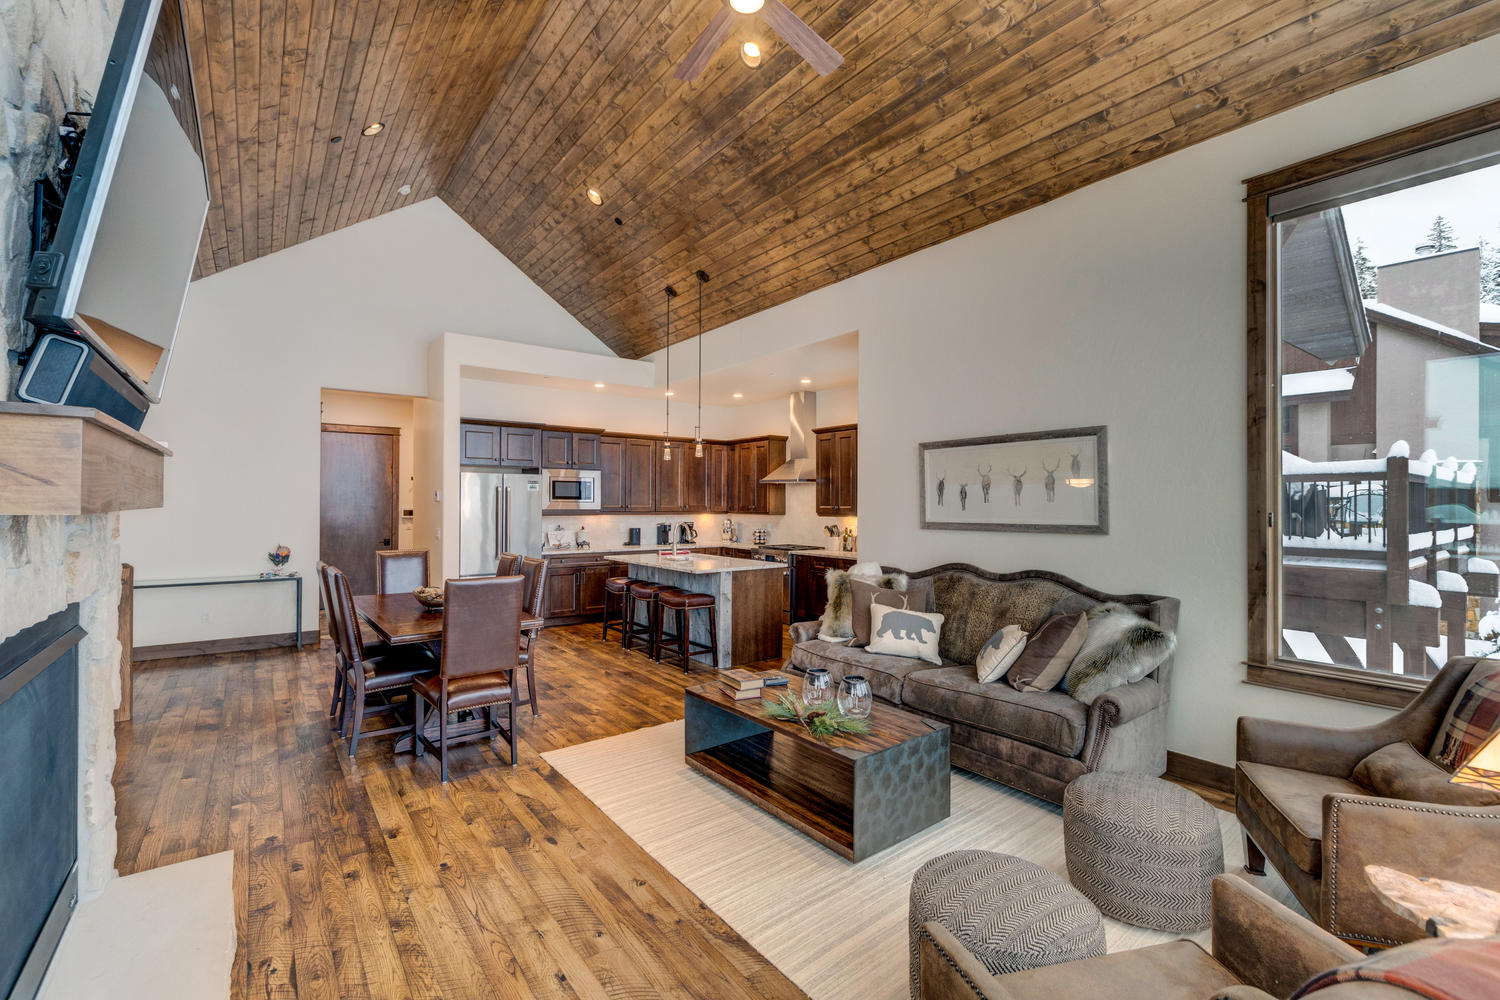 Large vaulted ceiling area with custom wood trim